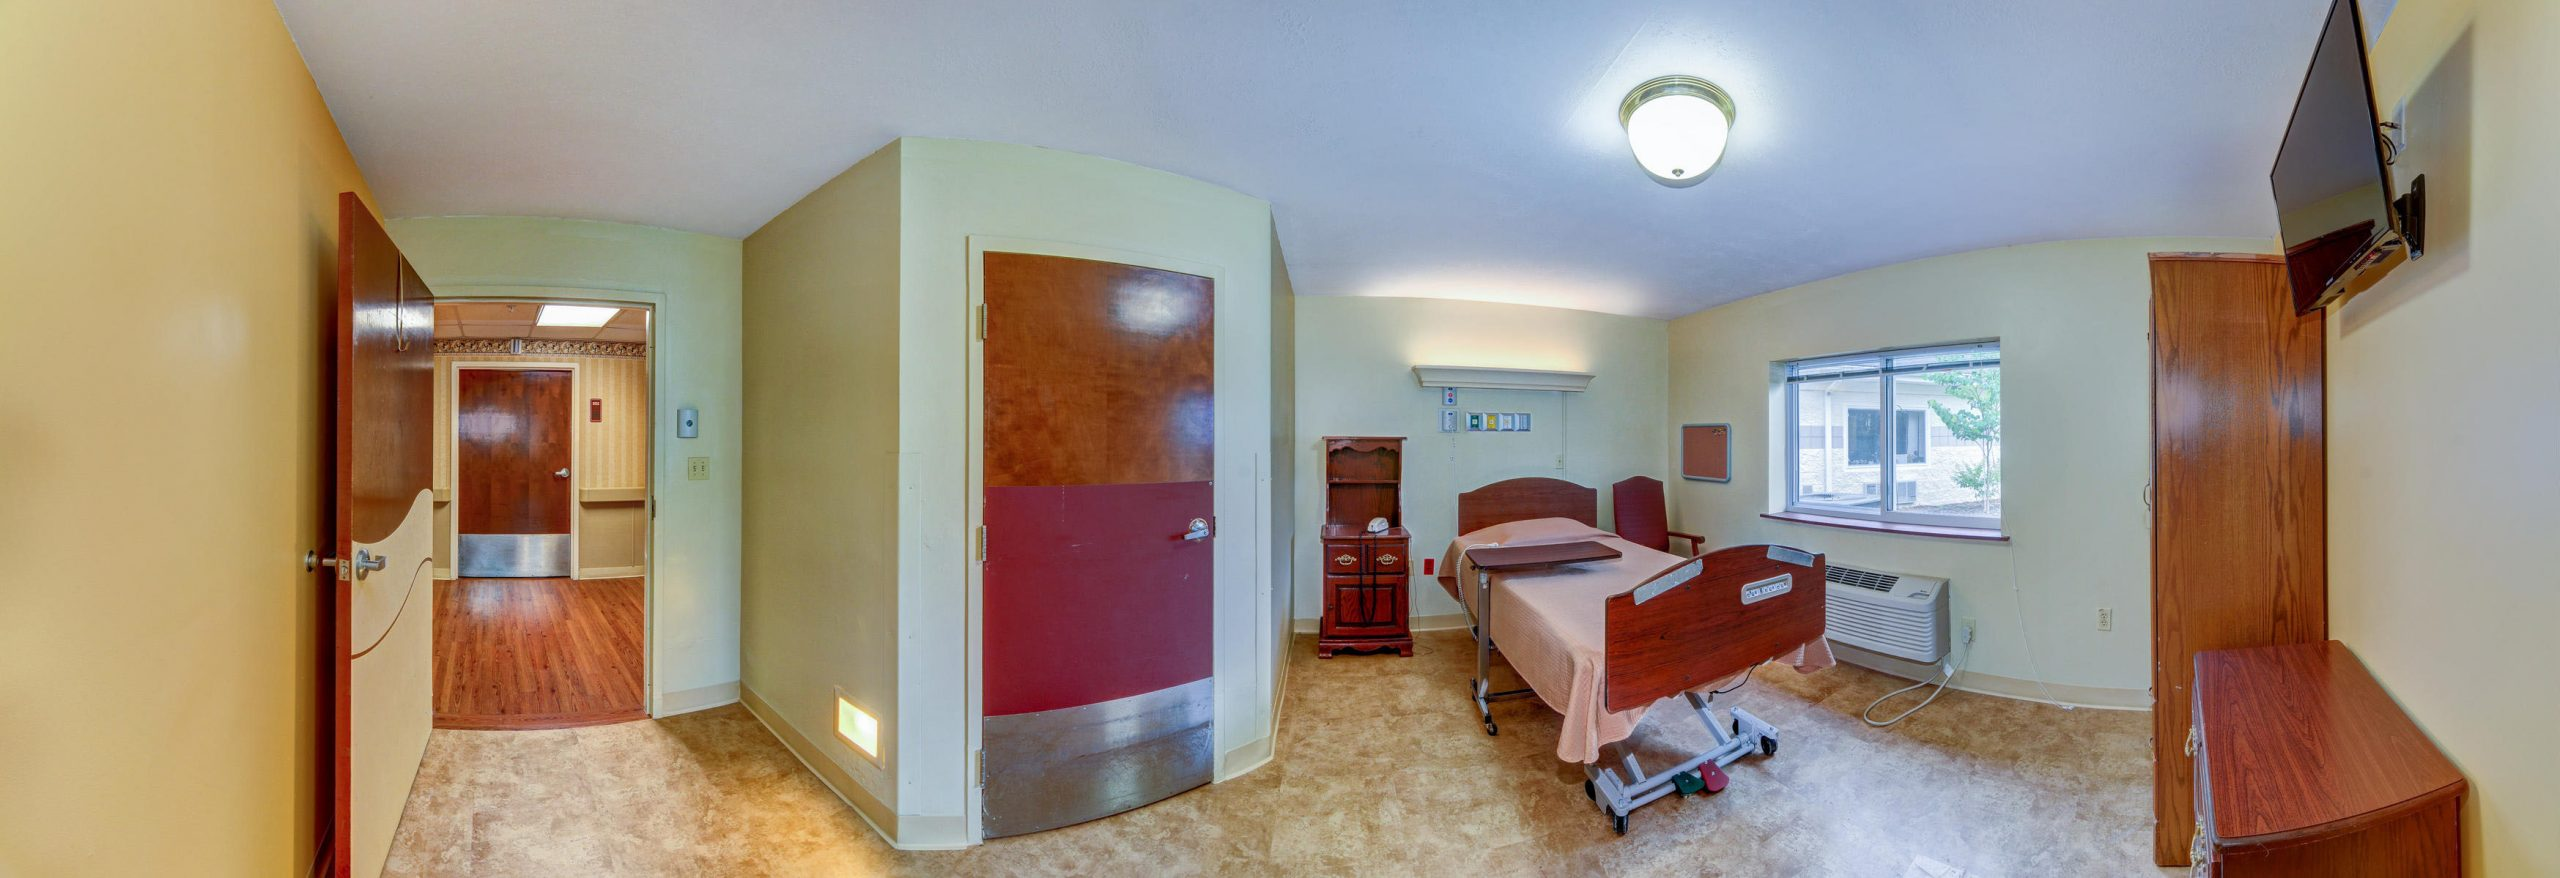 Panoramic view of Stonerise Lewisburg private patient room